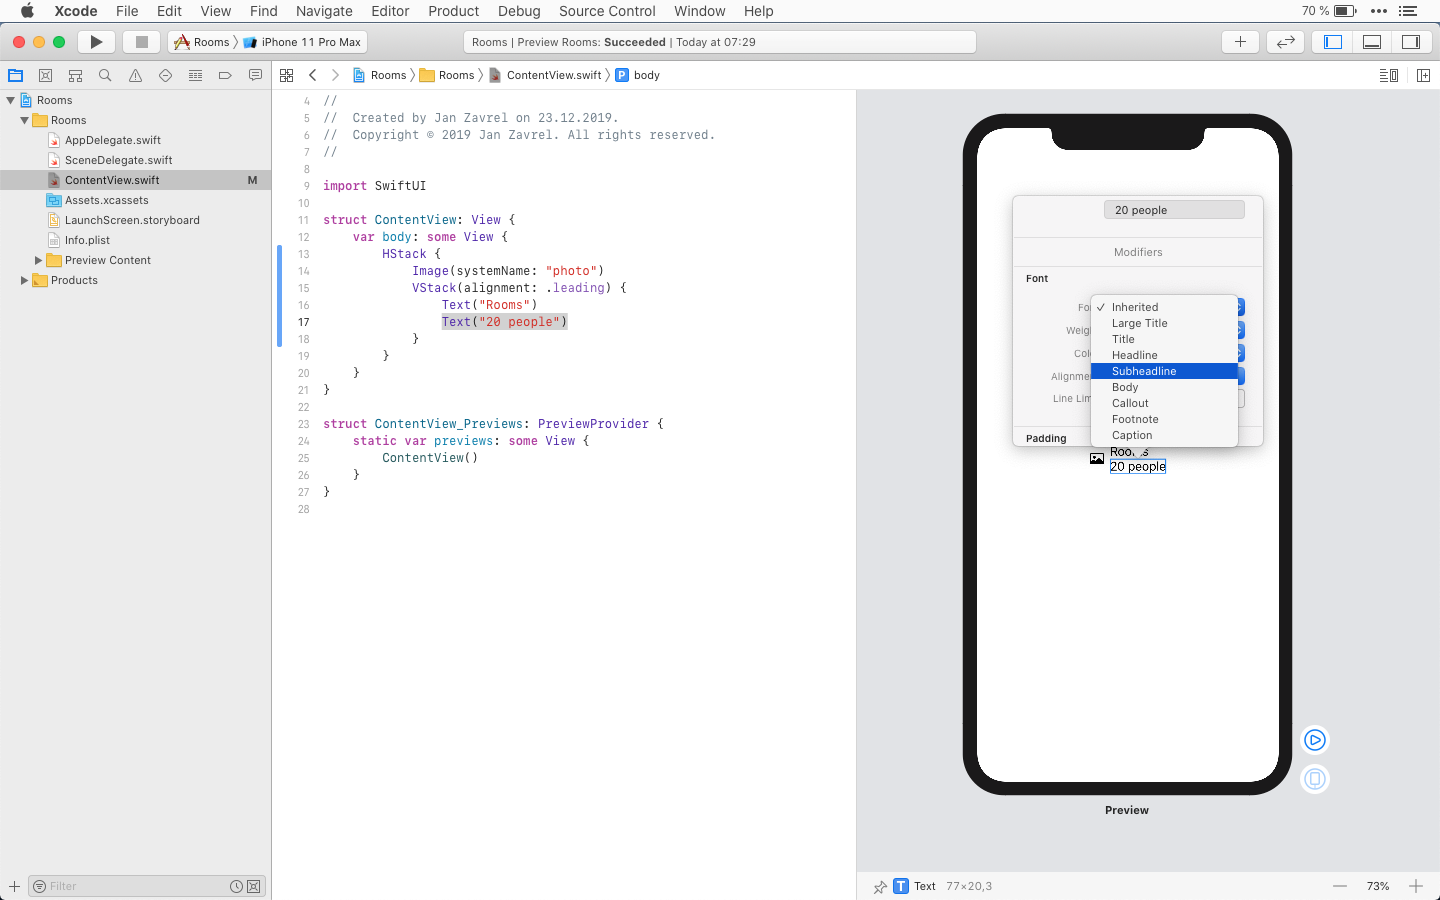 https://res.cloudinary.com/zavrelj/image/upload/v1578422456/codewithjan/swiftui-by-examples/swiftui-by-examples-21.png